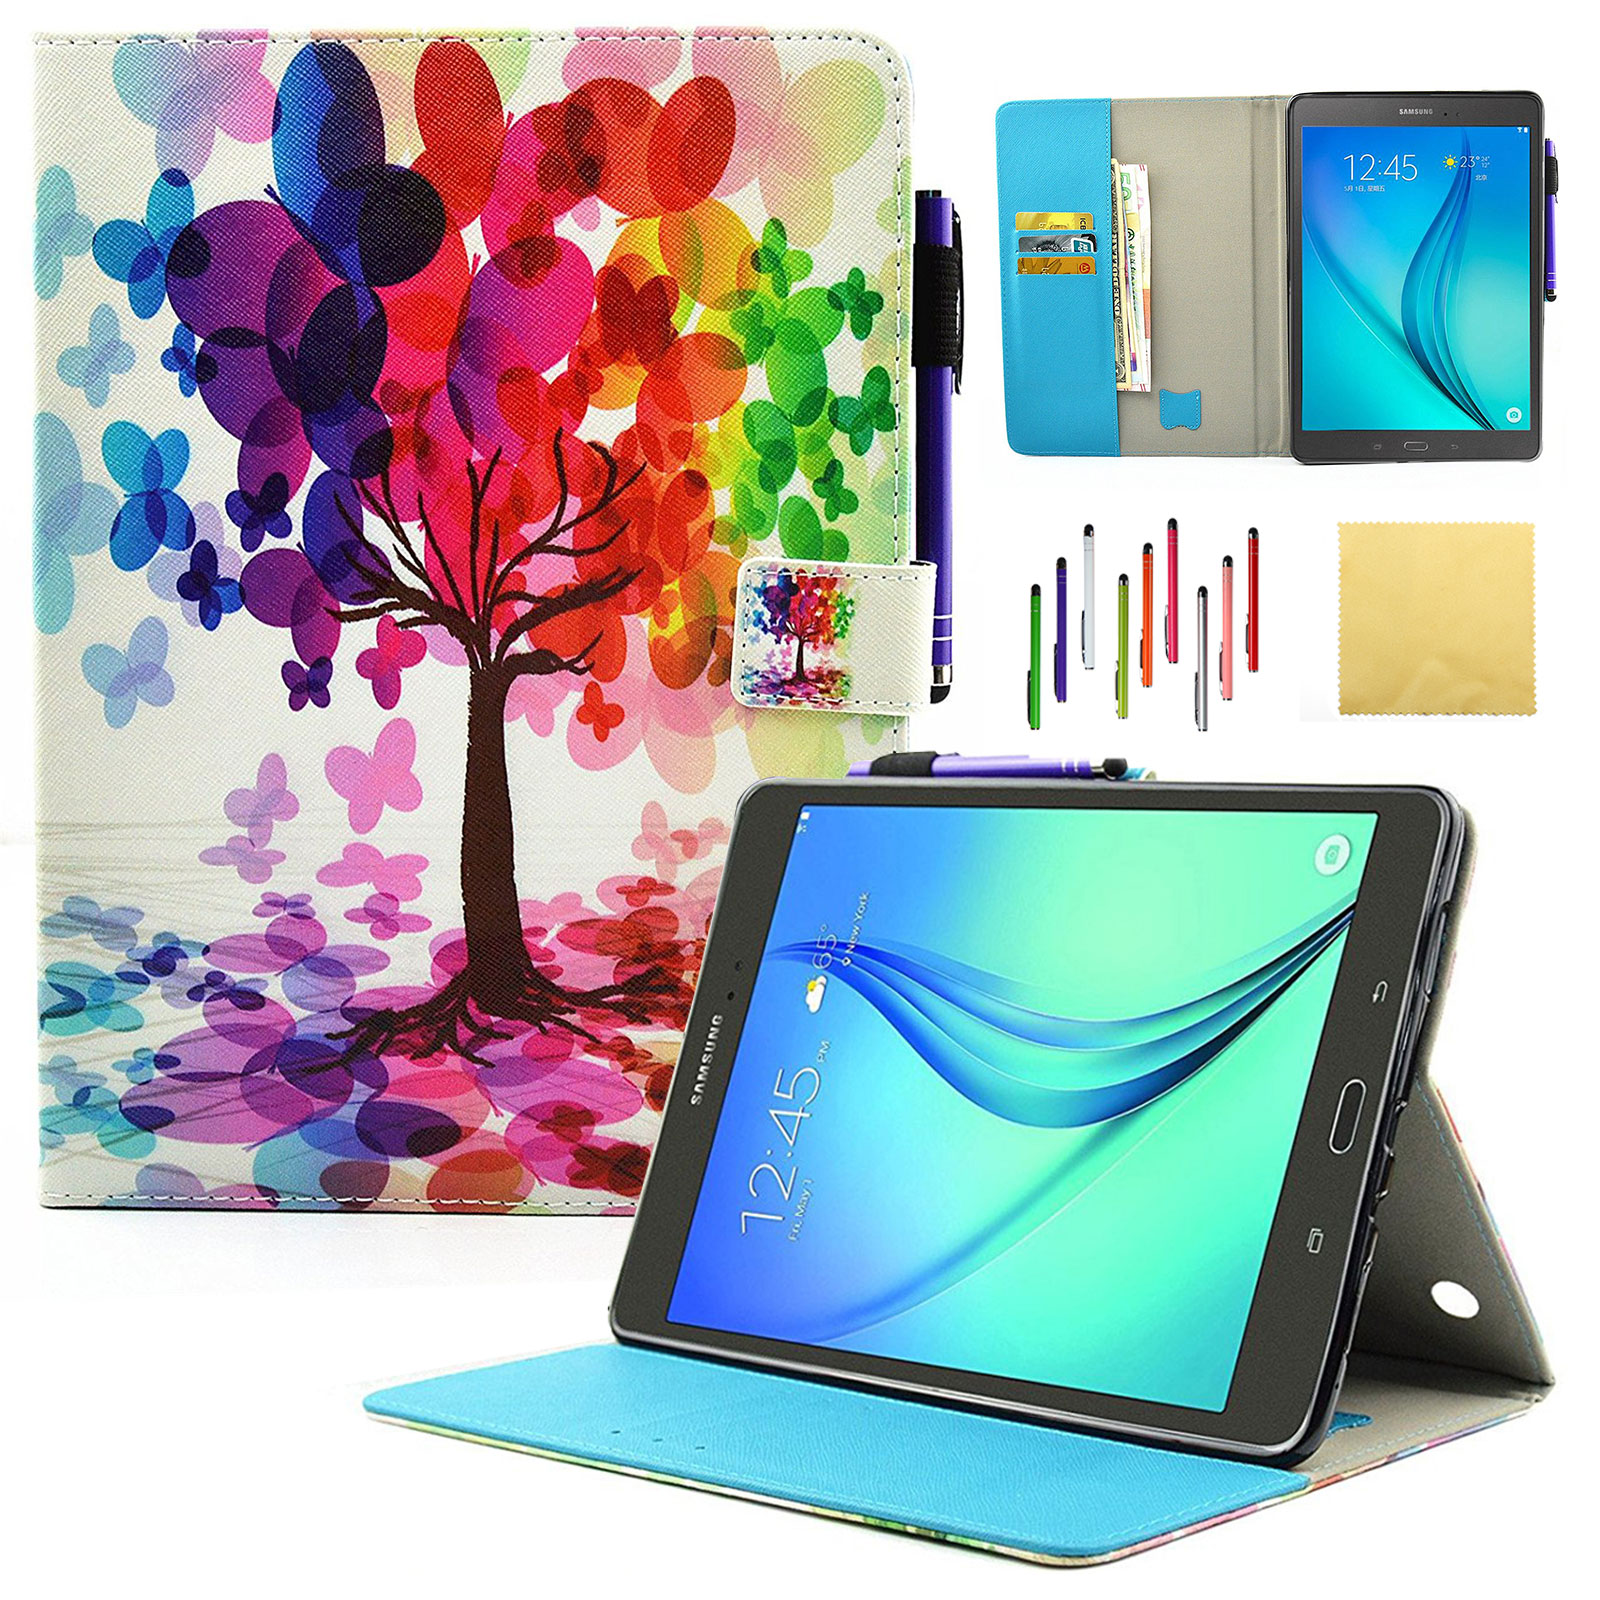 "Galaxy Tab A 9.7"" Case, SM-T550/SM-P550 Case, Goodest Smart PU Leather Folio Stand Cover with Auto Wake/Sleep Wallet Case for Samsung Galaxy Tab A 9.7-inch Tablet with S Pen, Butterfly Tree"